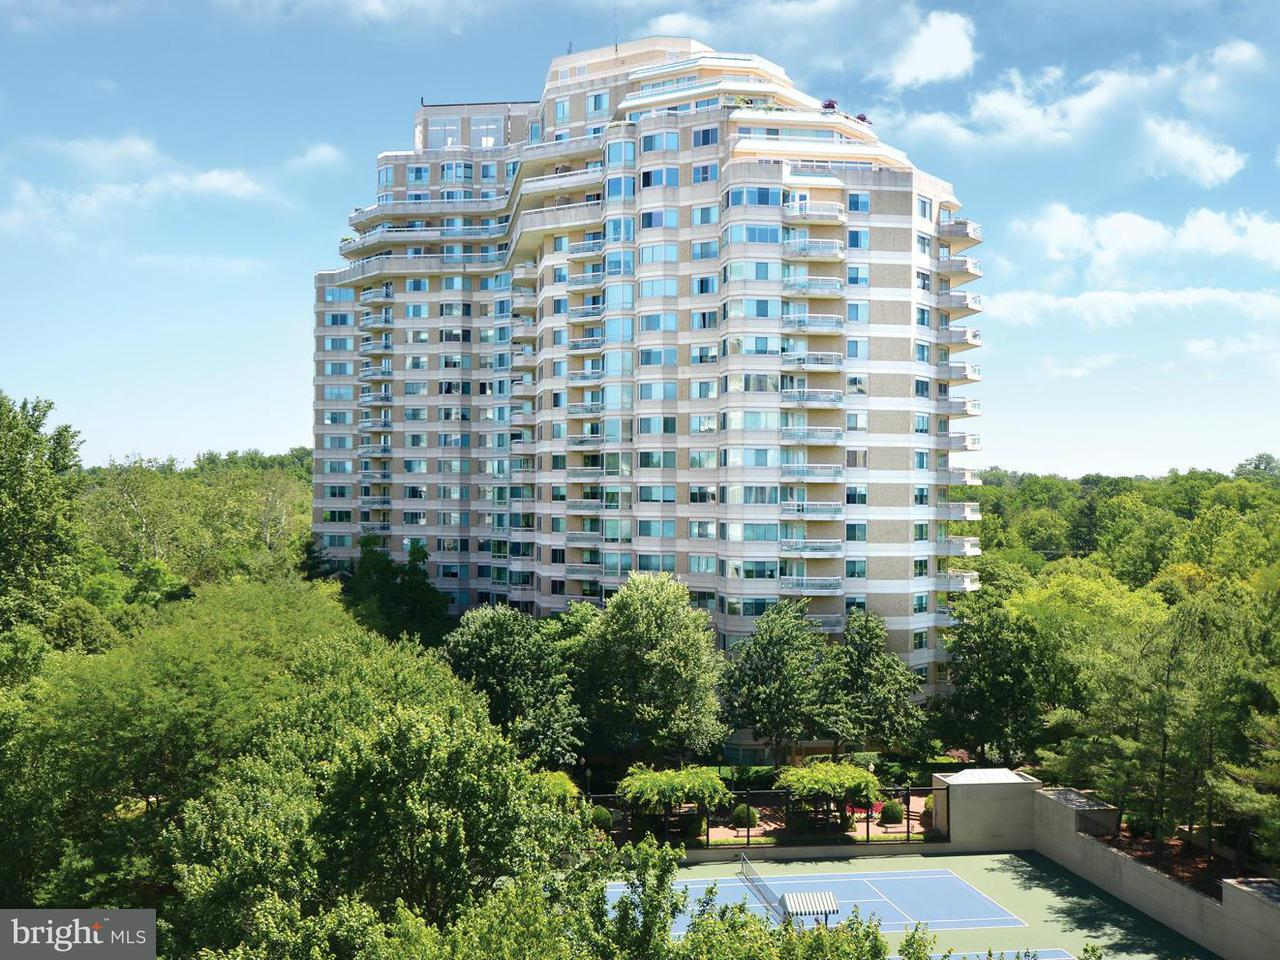 Condominium for Sale at 5600 WISCONSIN AVE #1603 5600 WISCONSIN AVE #1603 Chevy Chase, Maryland 20815 United States